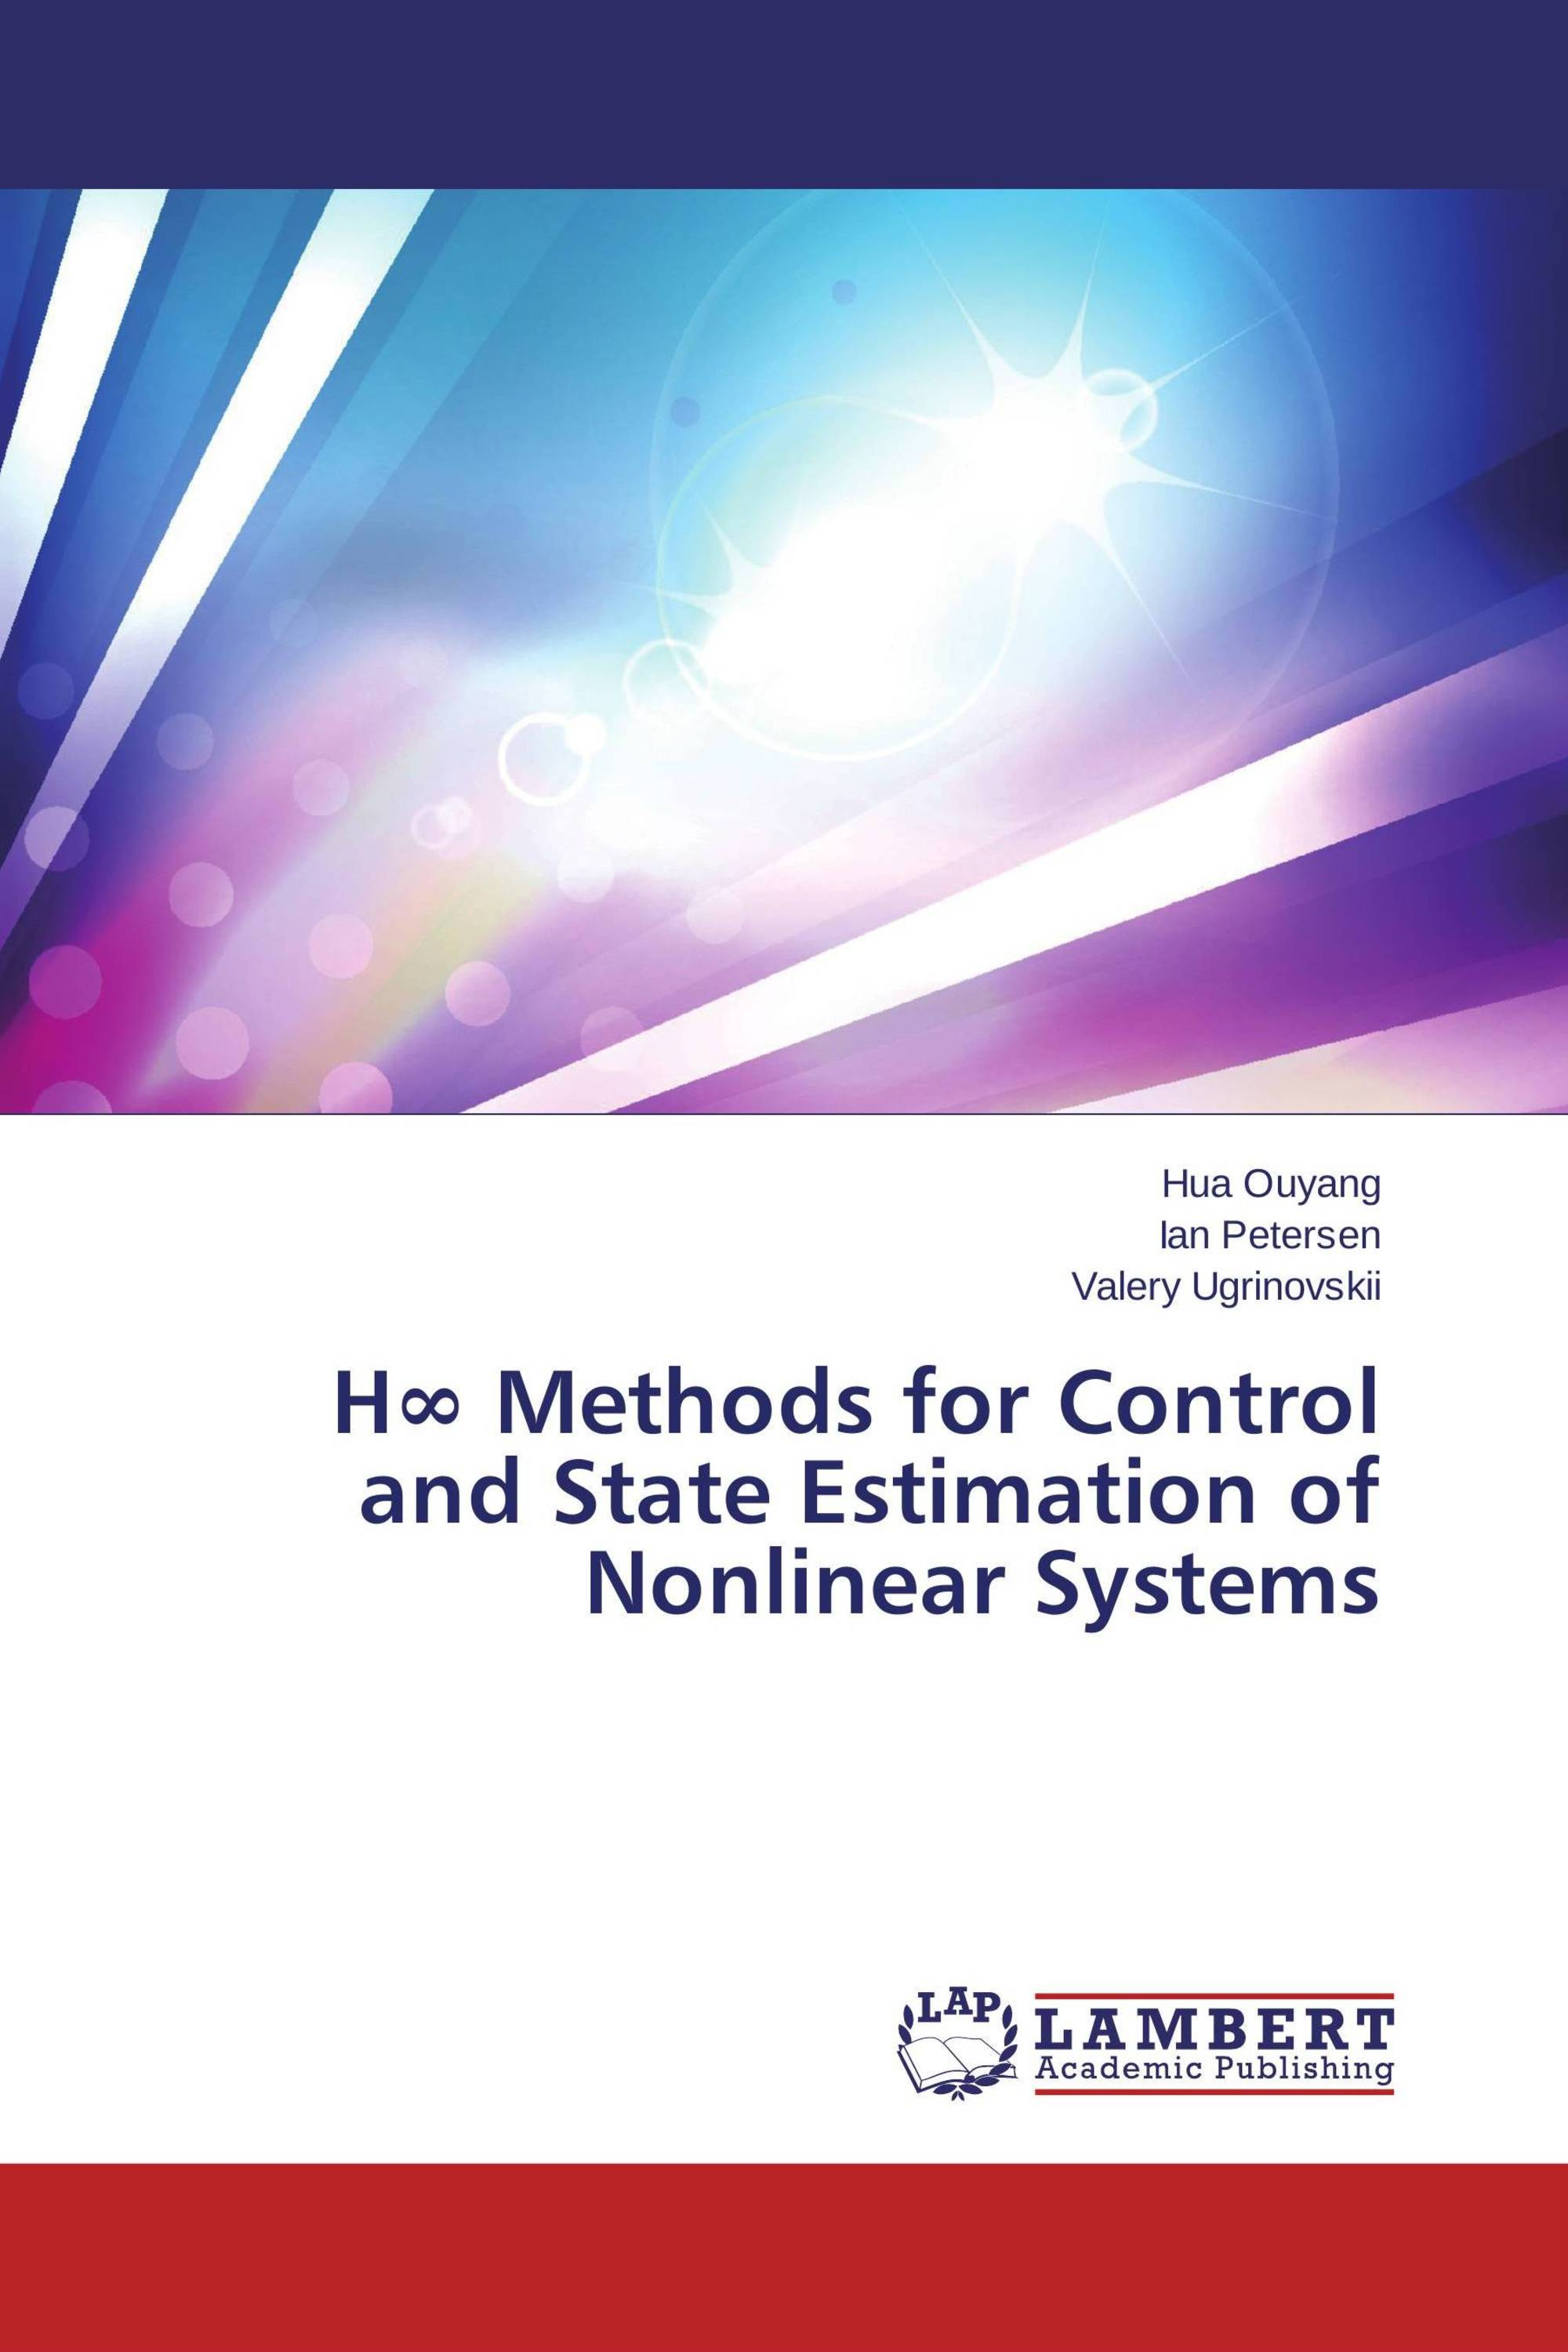 H∞ Methods for Control and State Estimation of Nonlinear Systems